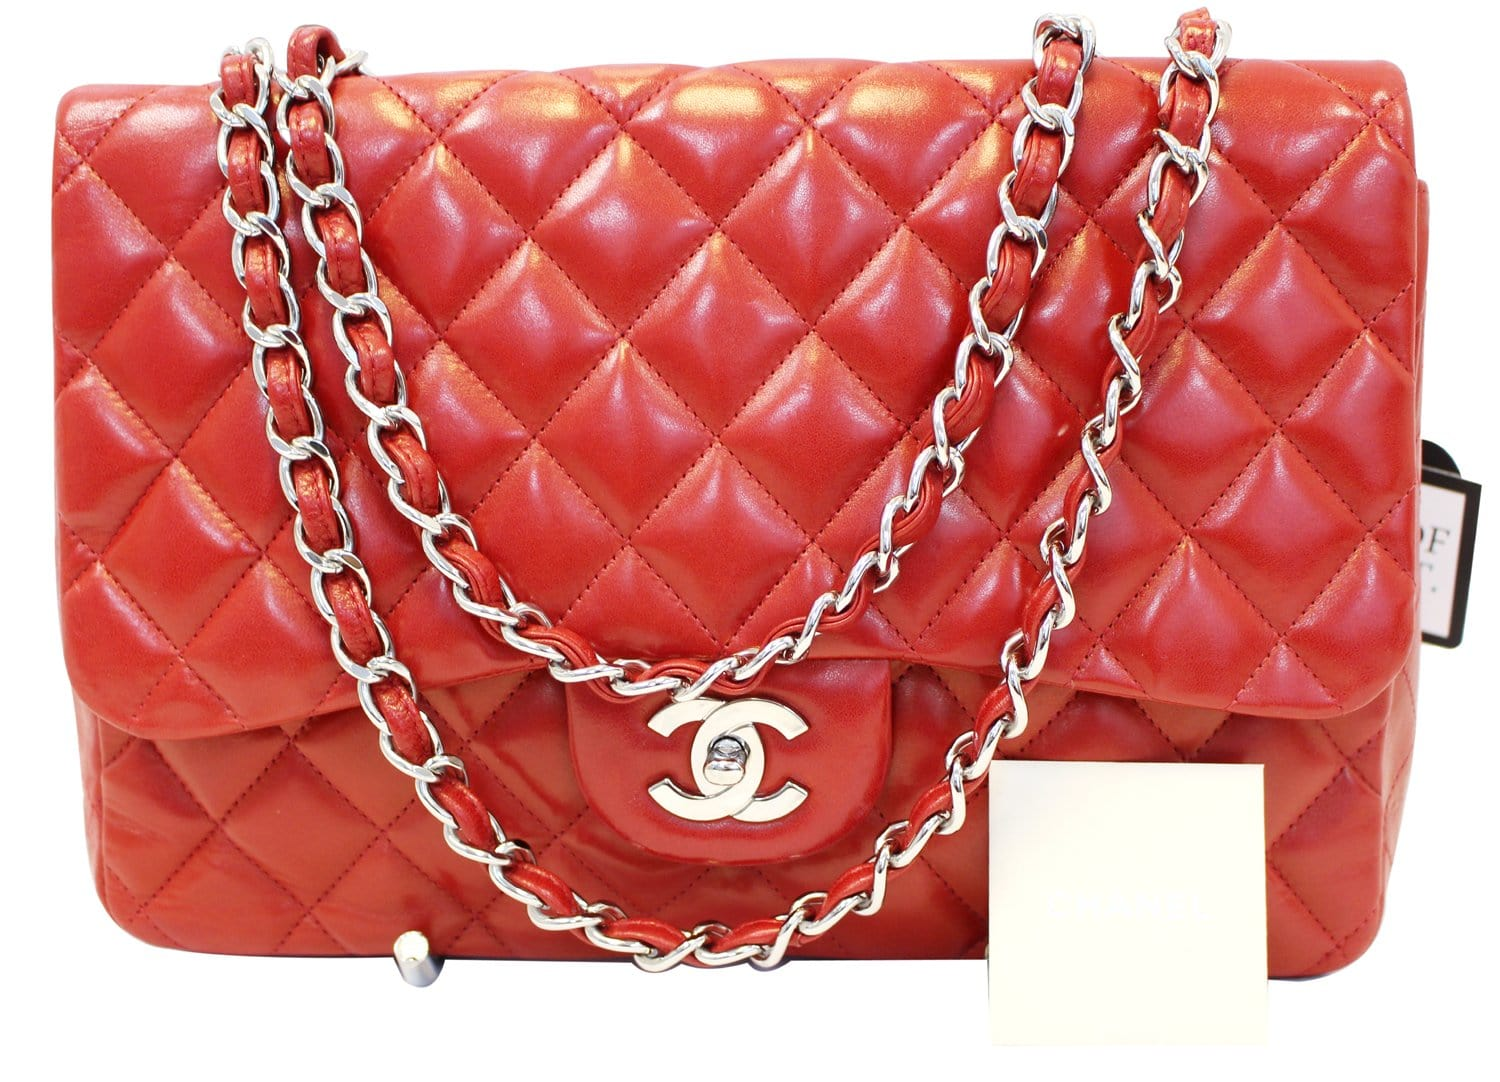 1f5e34dfb9d4 CHANEL Red Quilted Lambskin Leather Classic Jumbo Double Flap Bag